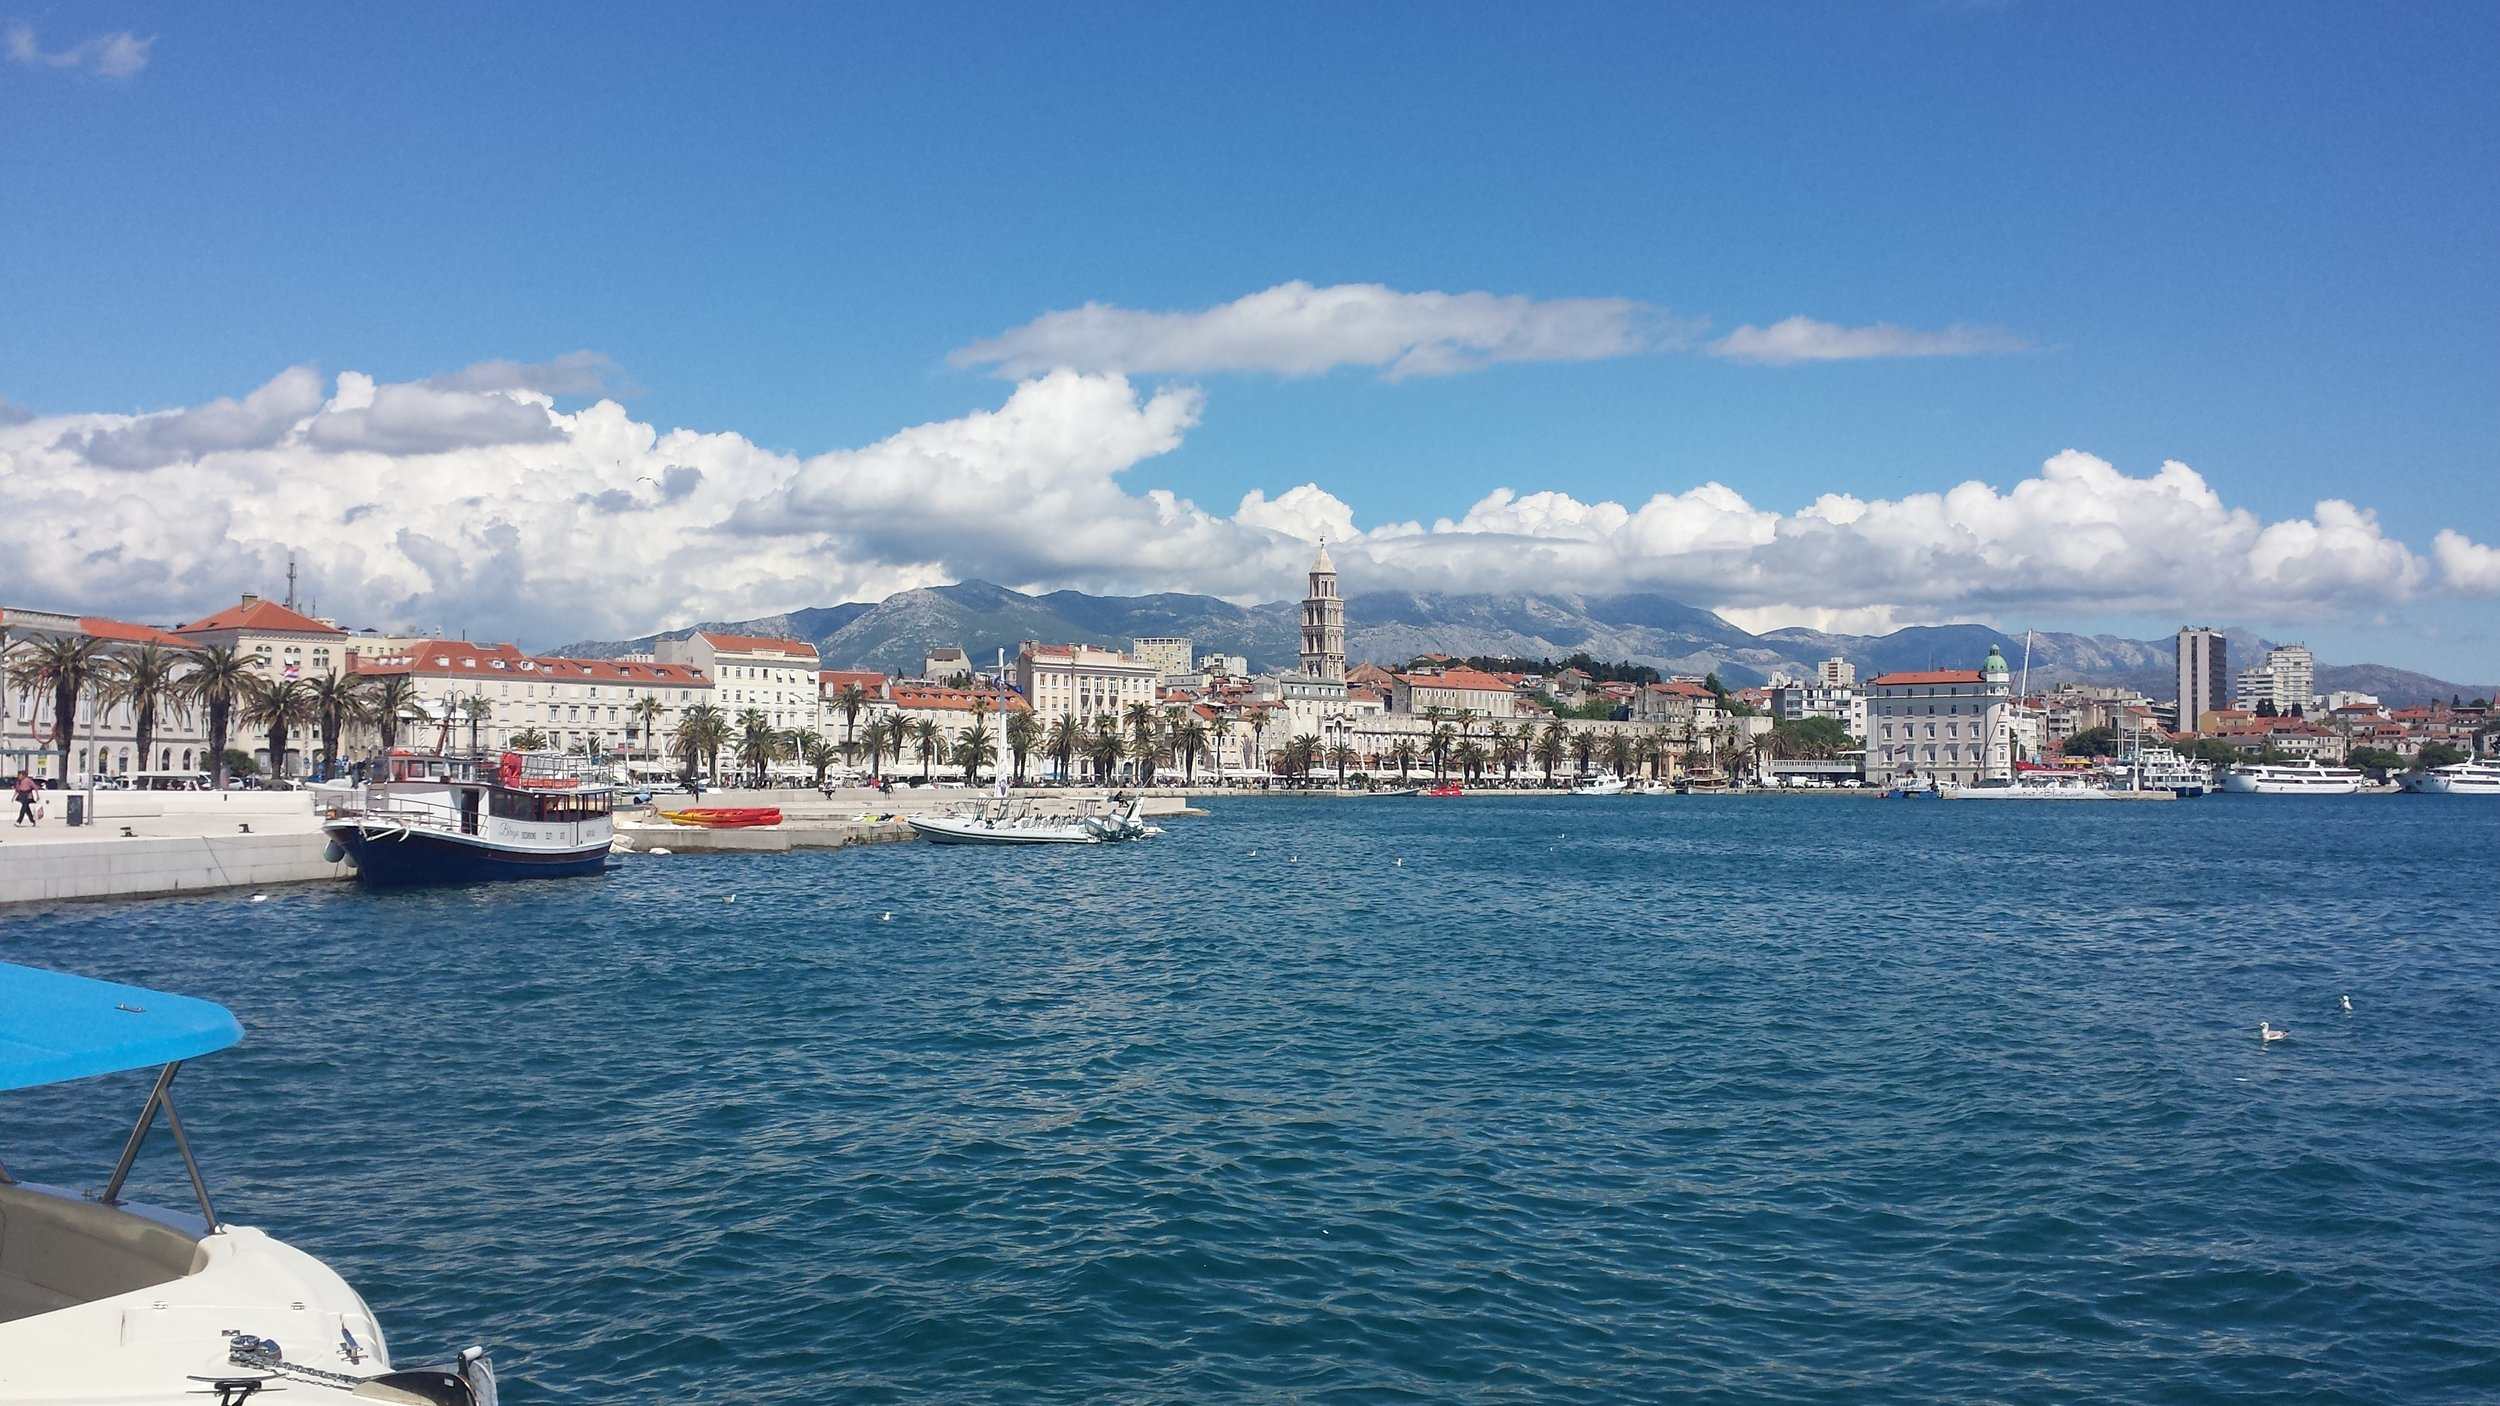 The view of Split from the harbor.